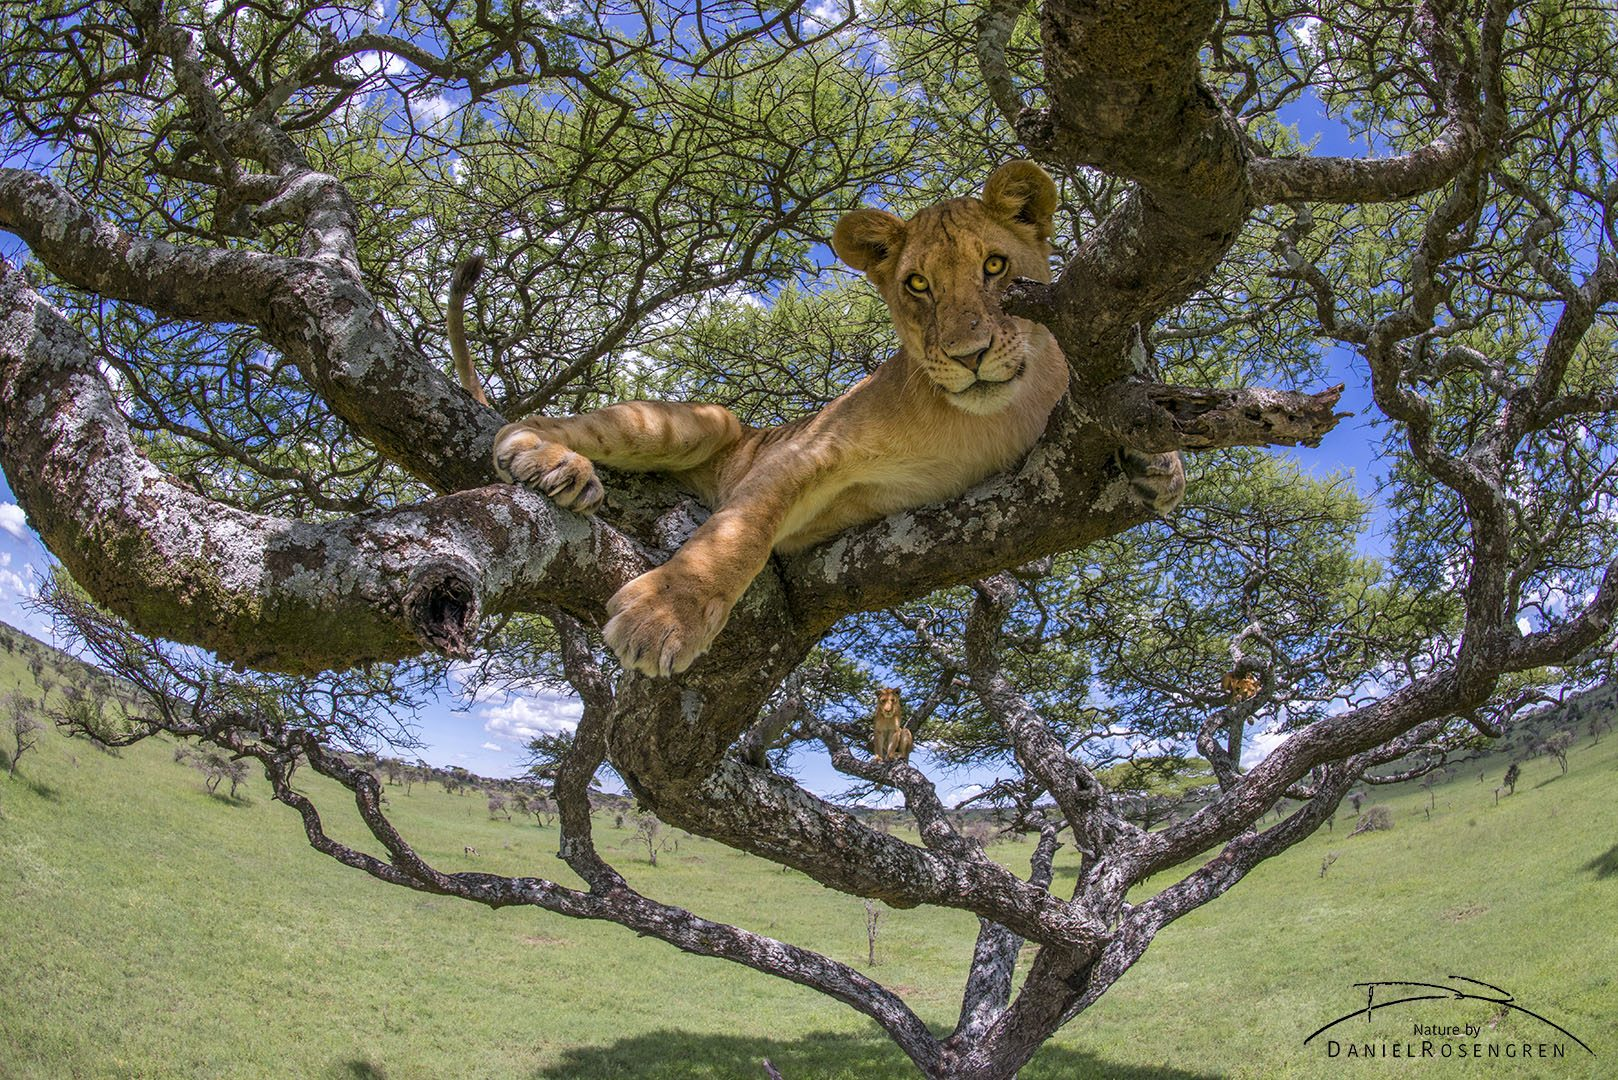 A young lion in an Acacia tree photographed with a 16mm fisheye lens. © Daniel Rosengren